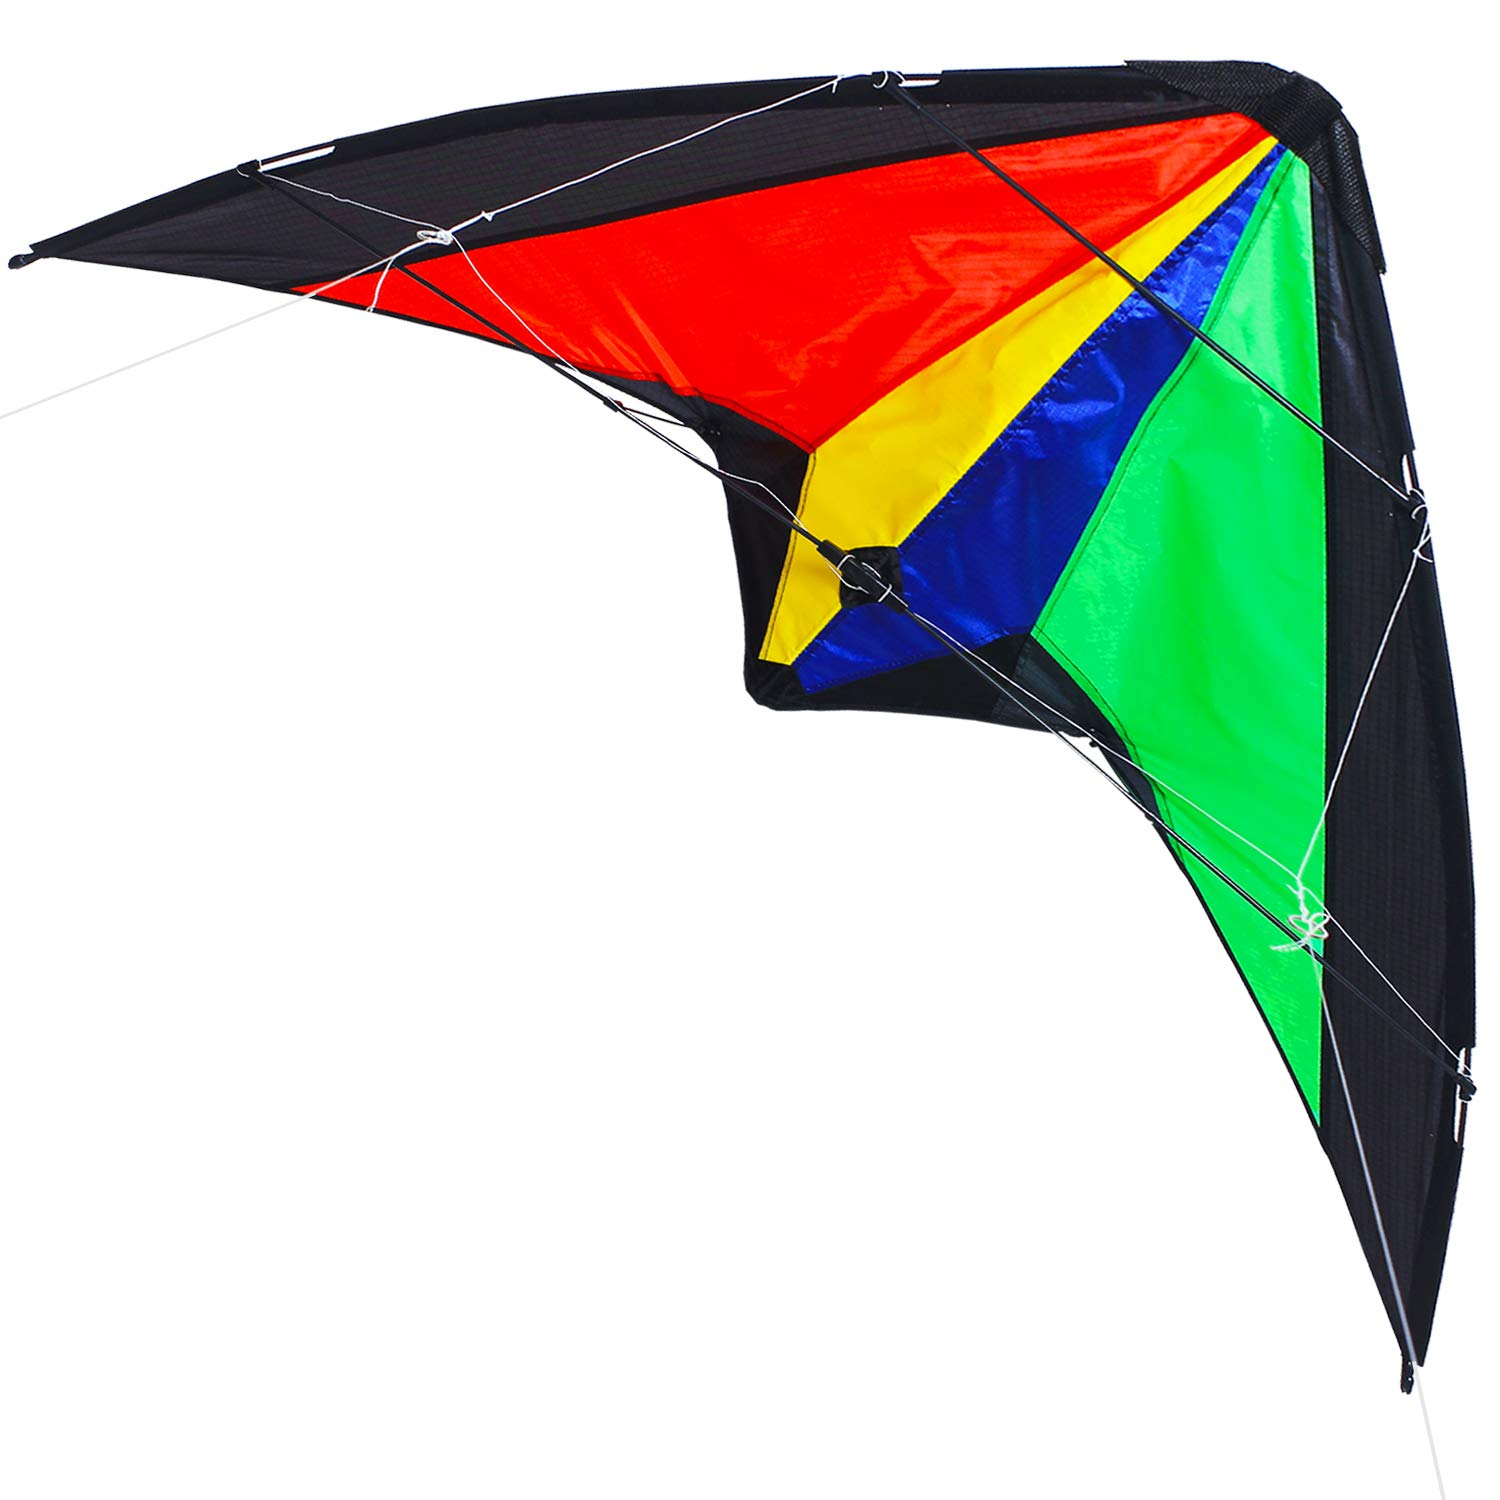 Zhuoyue Kite Dual Line Stunt Kite 51-inch Wingspan, Professional Kites for Adults Outdoor Sport ,Includes Kite Line Handle and Bag by Zhuoyue